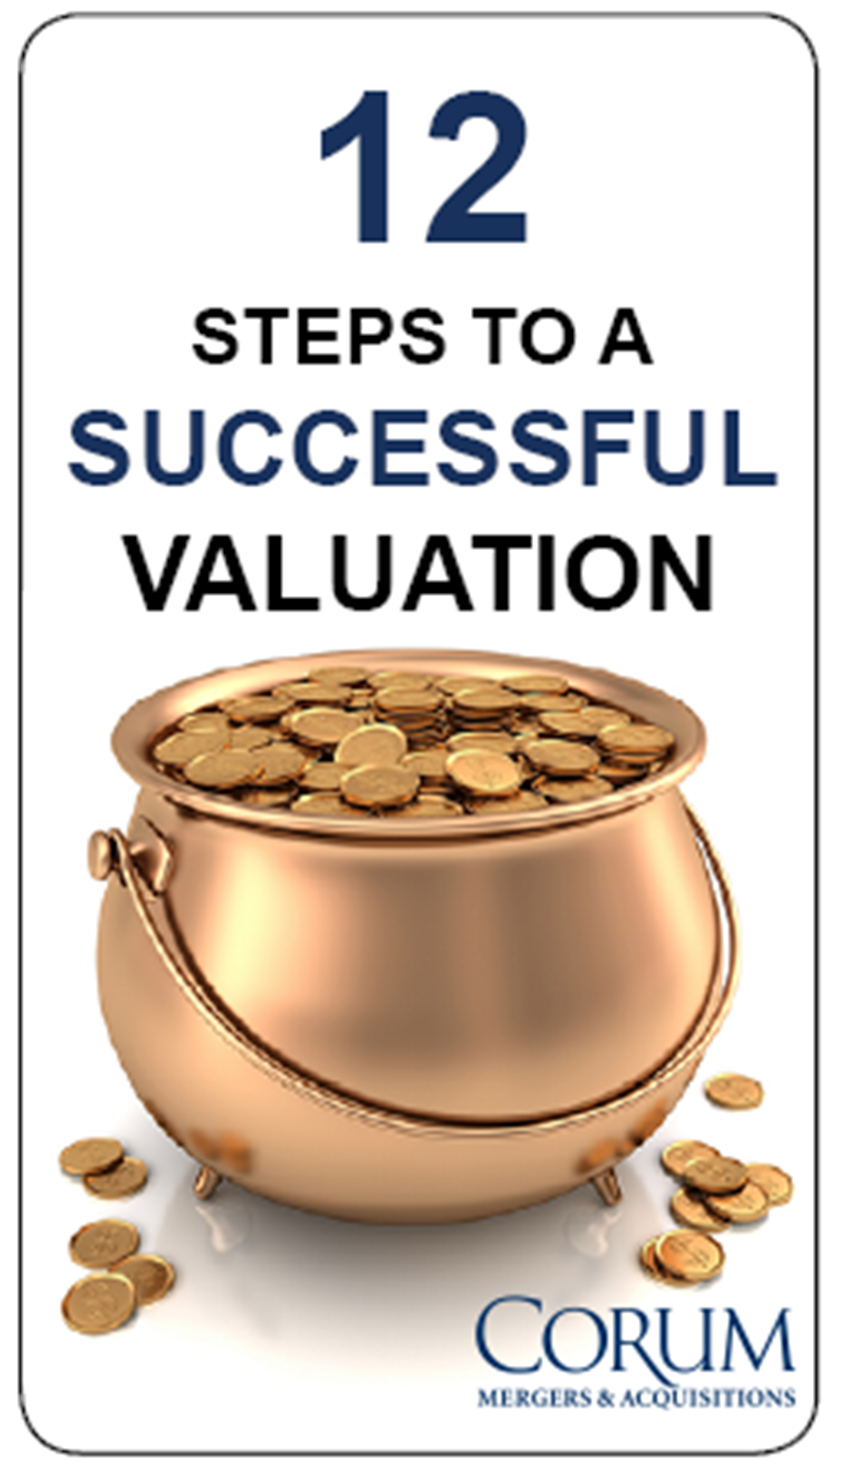 Tech M&A Monthly: 12 Tips for a Successful Valuation #9 & 10